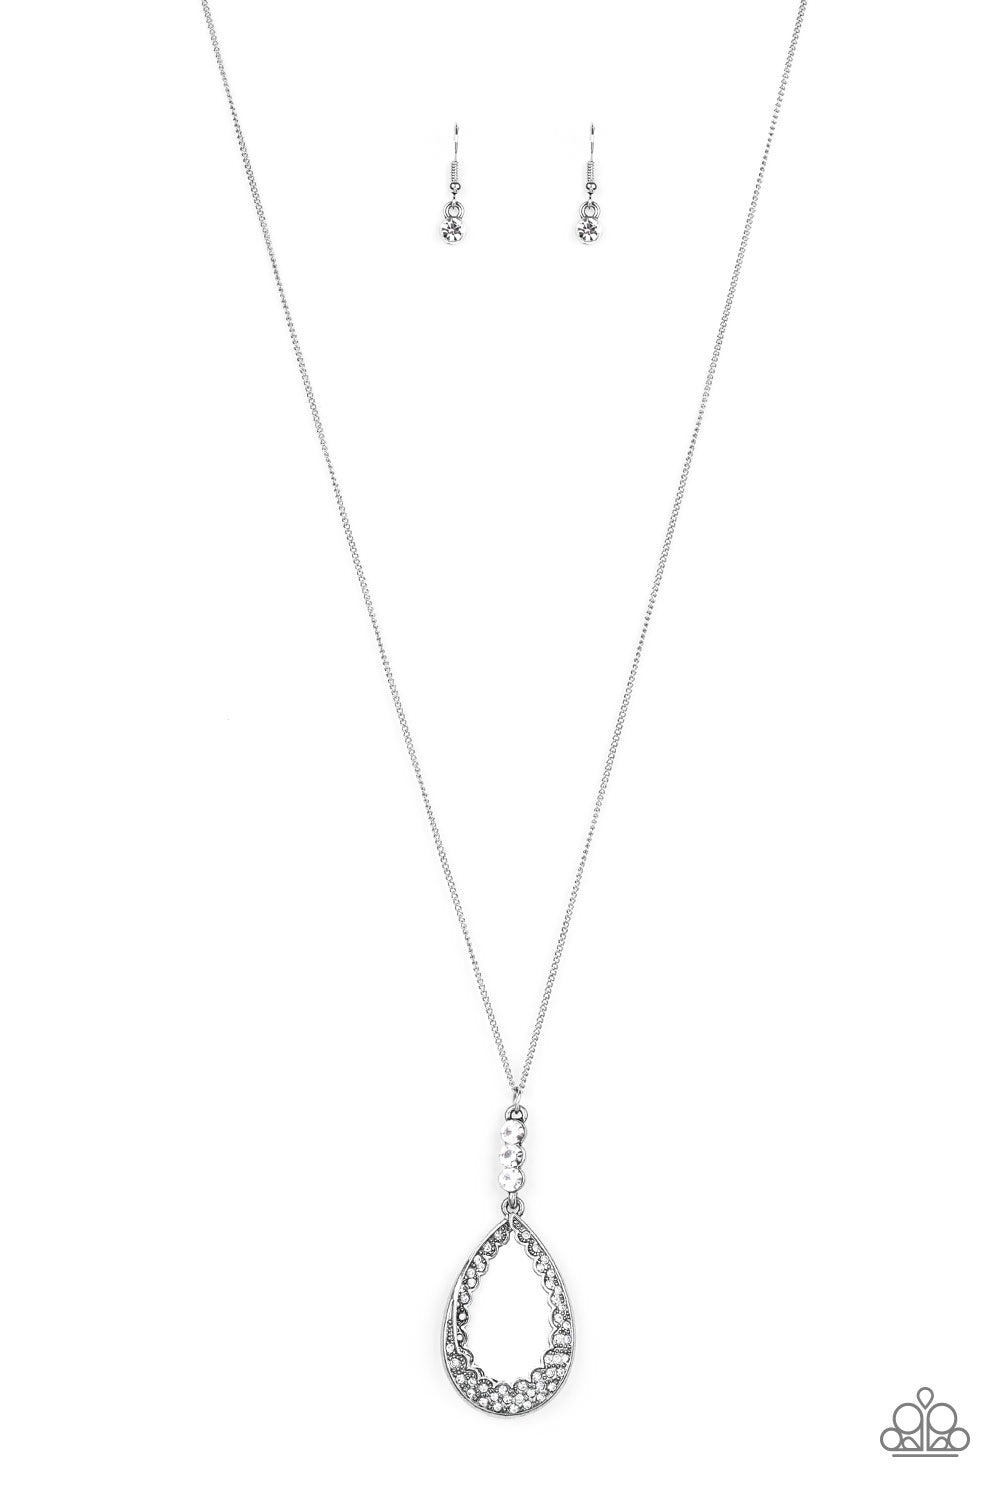 Paparazzi Necklace-Red Carpet Royal-Silver